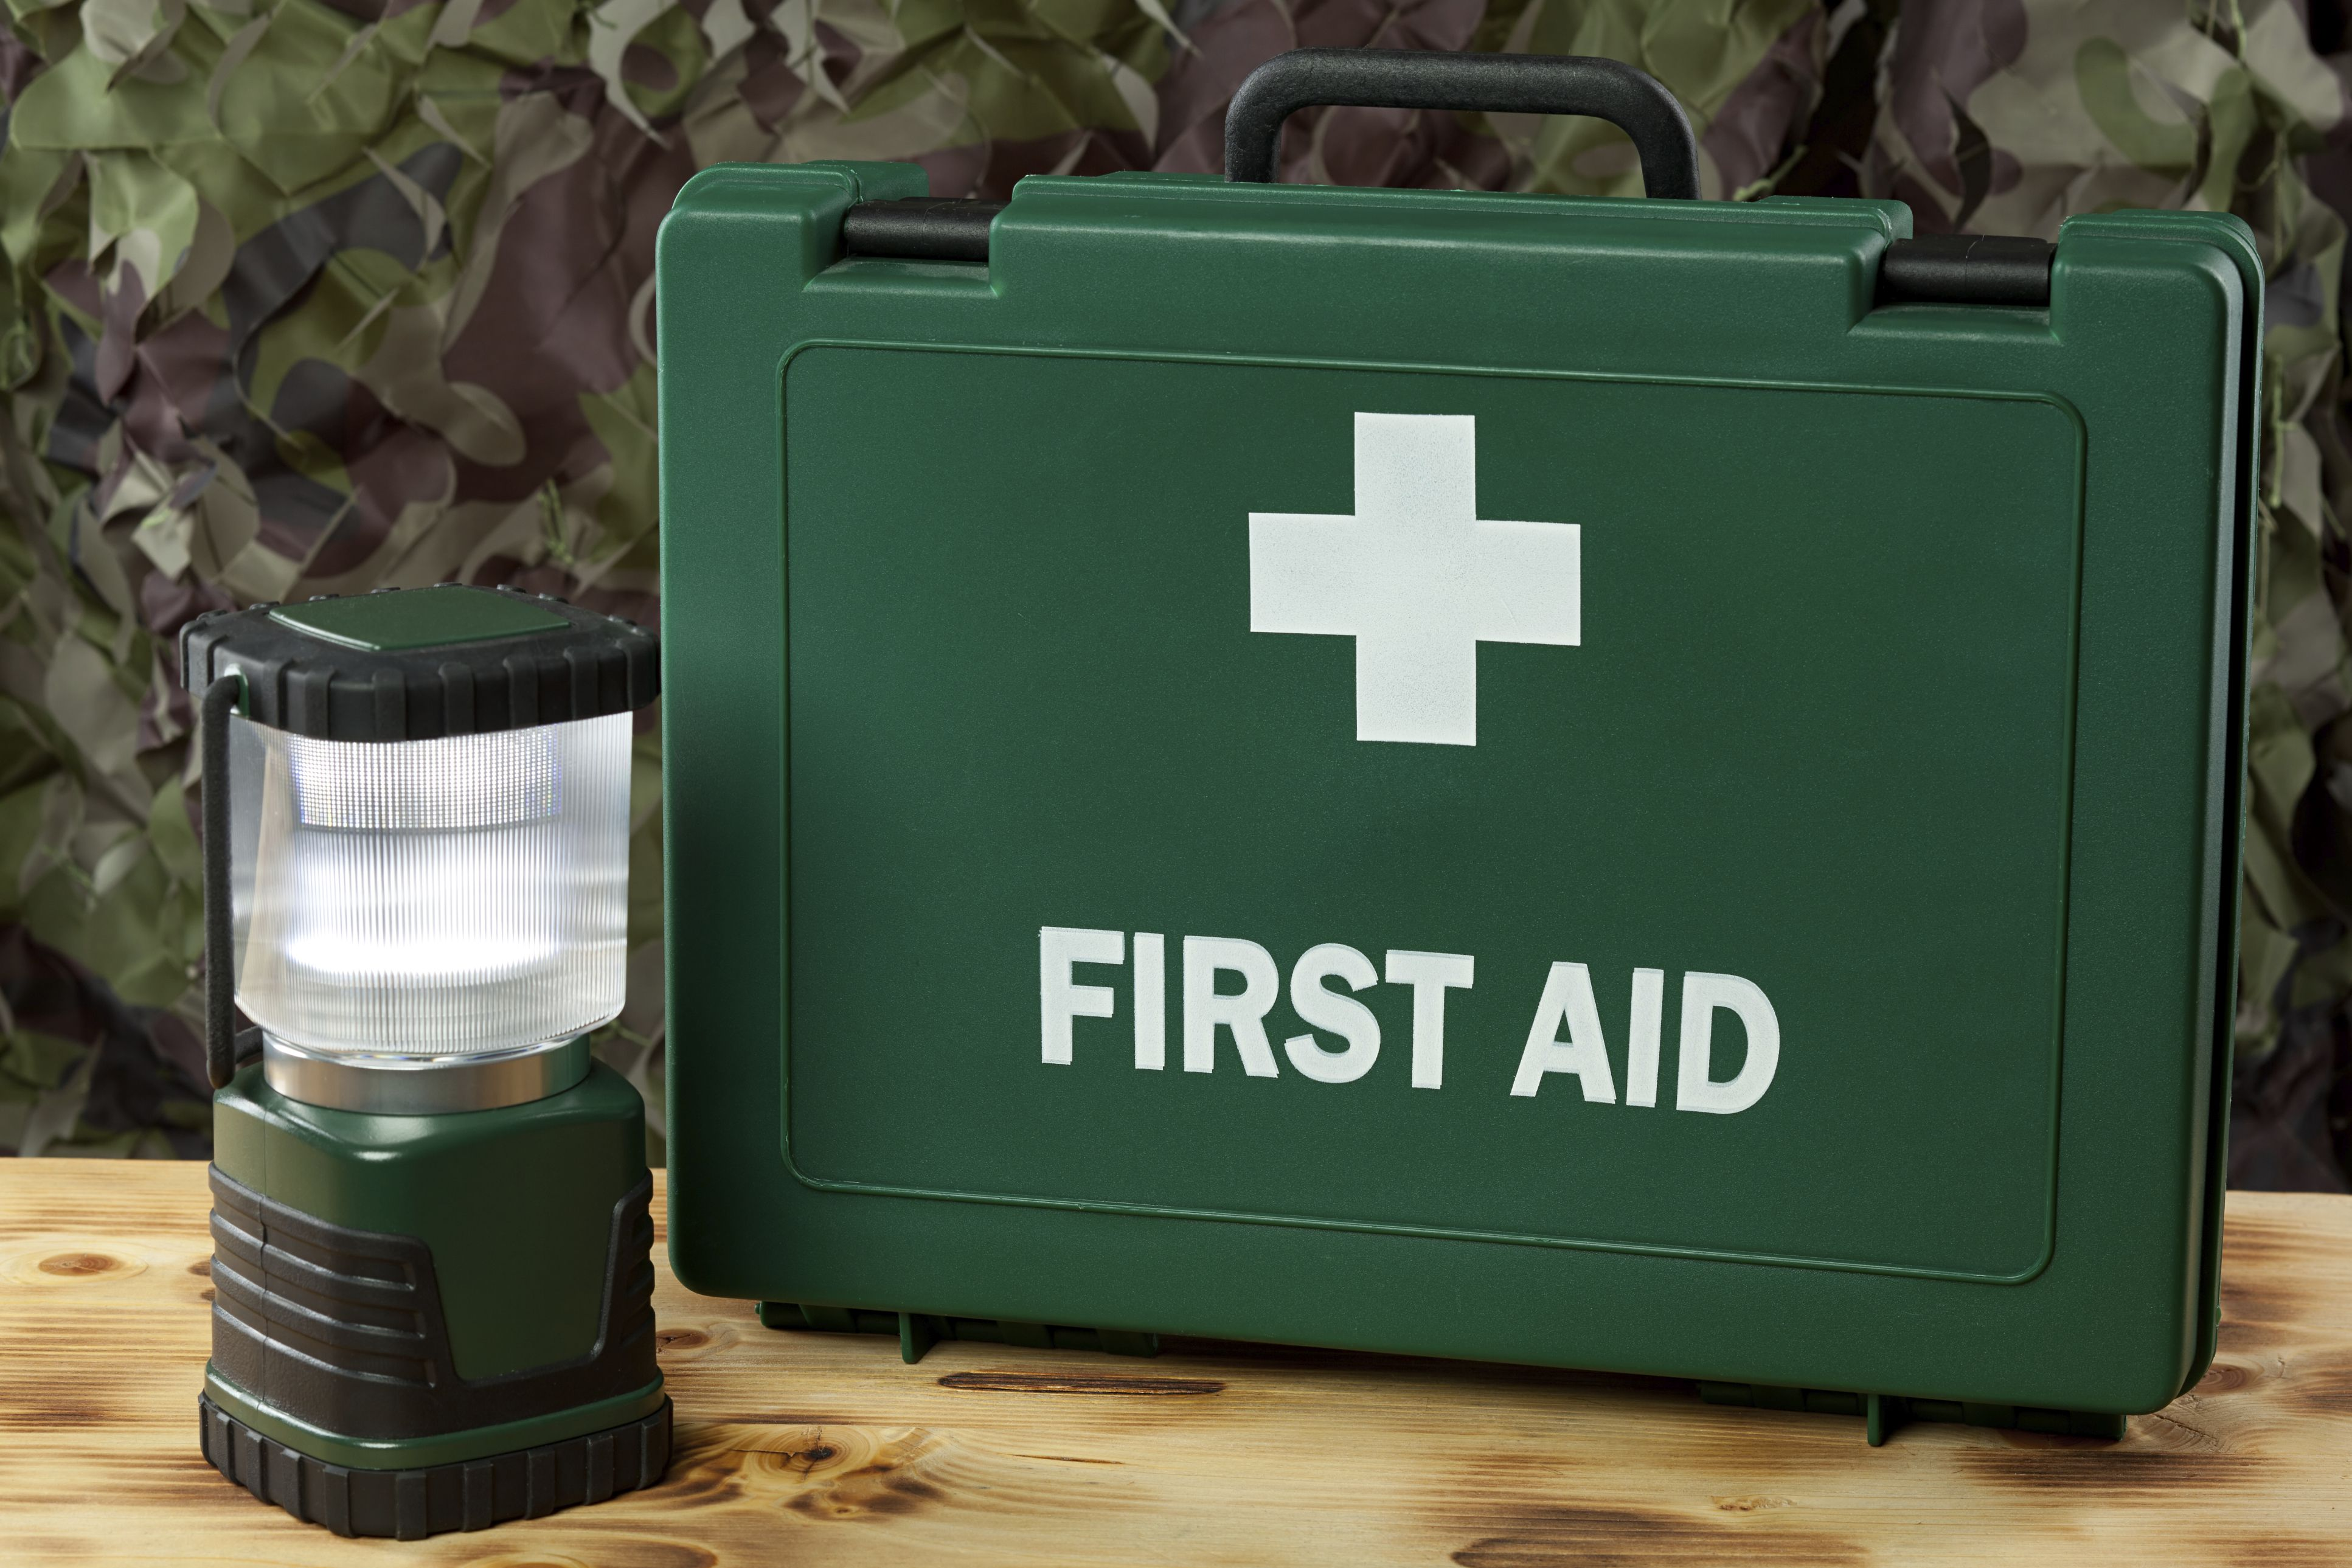 First aid kit and lantern on a table